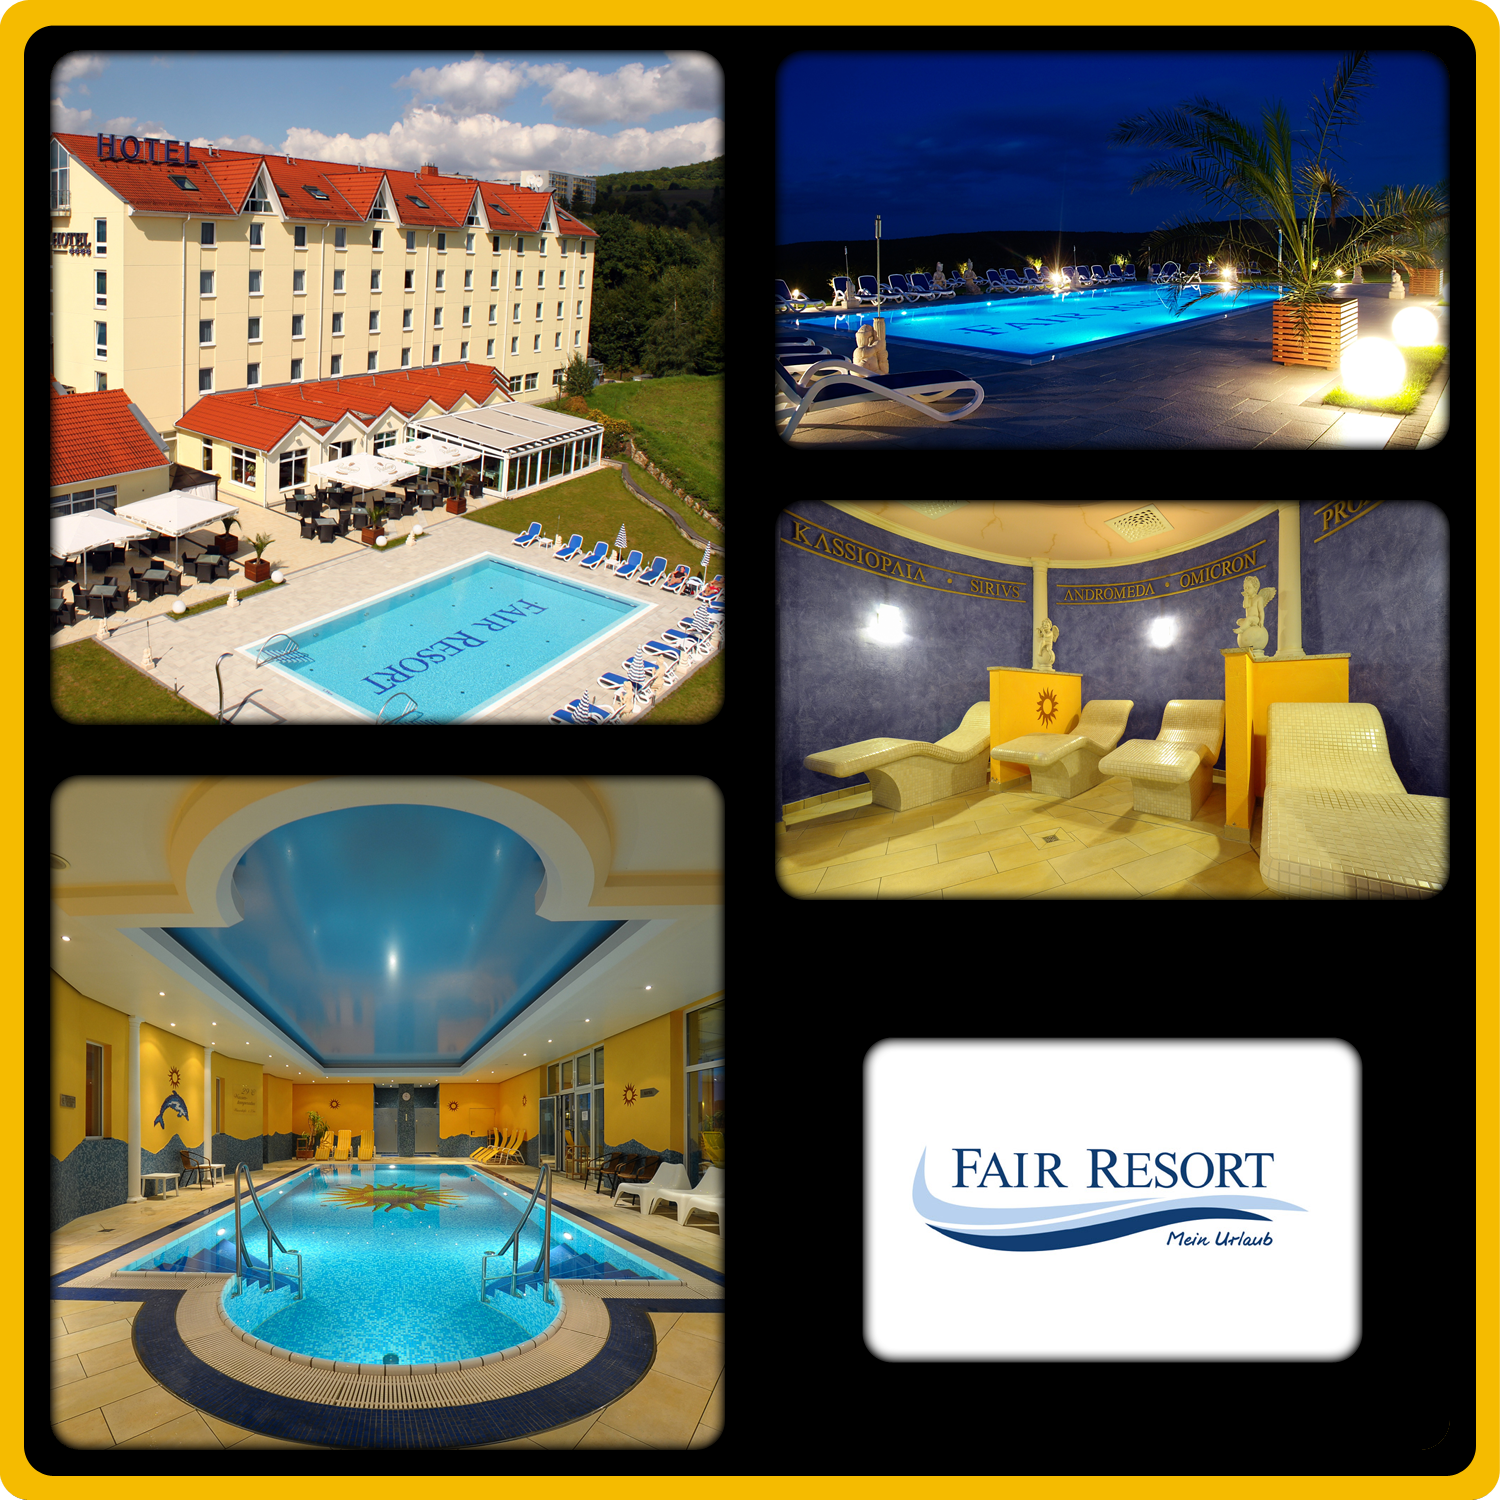 Hotel Fair Resort Jena